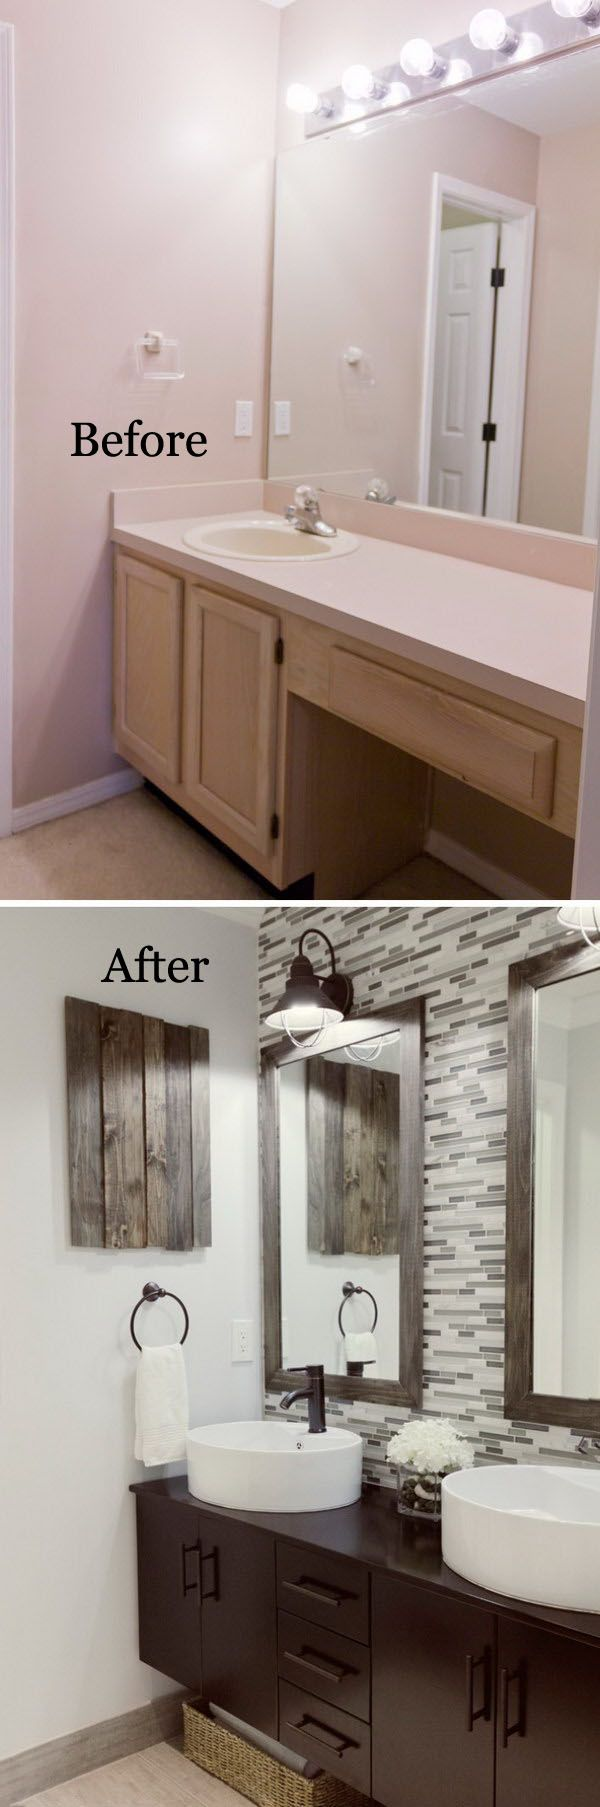 the immensely cool diy bathroom remodel ways you cannot find on the internet diy home decor. Black Bedroom Furniture Sets. Home Design Ideas